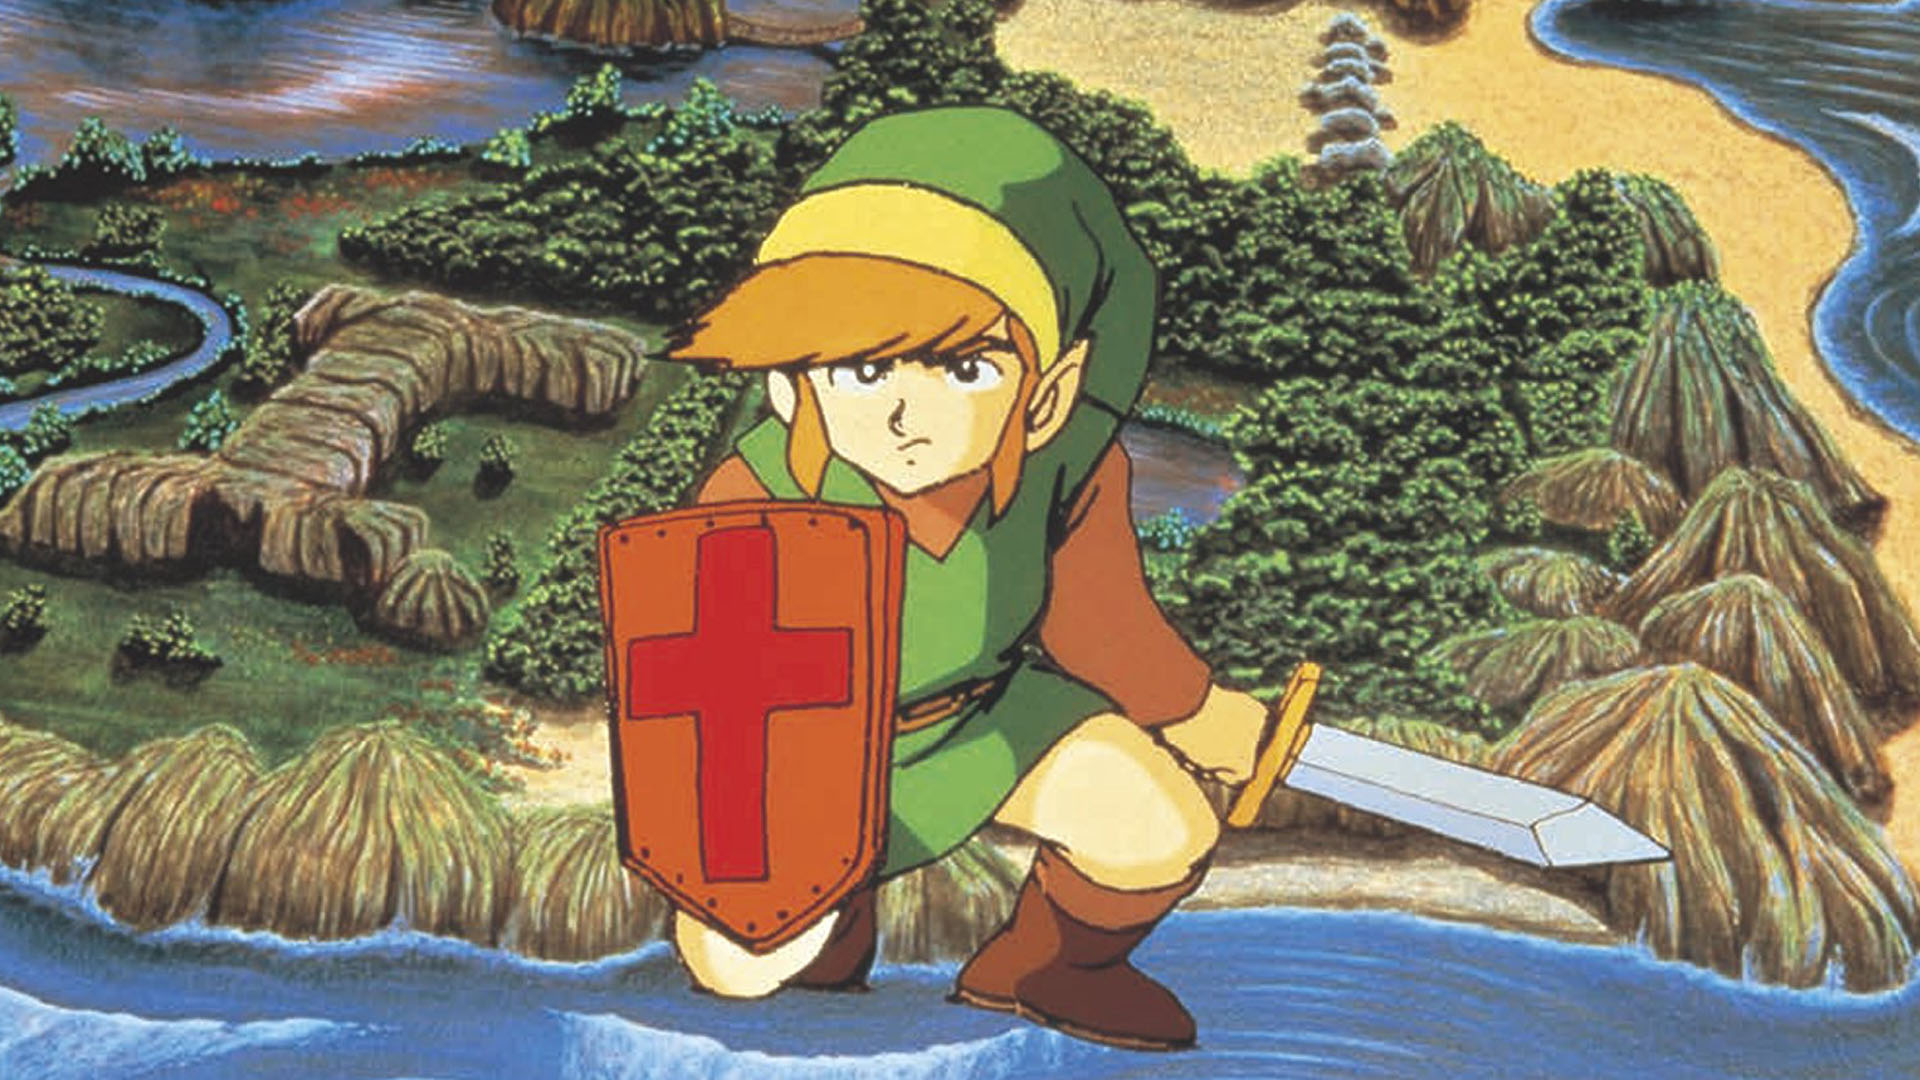 A graded copy of NES Zelda just went for $3,300 at auction